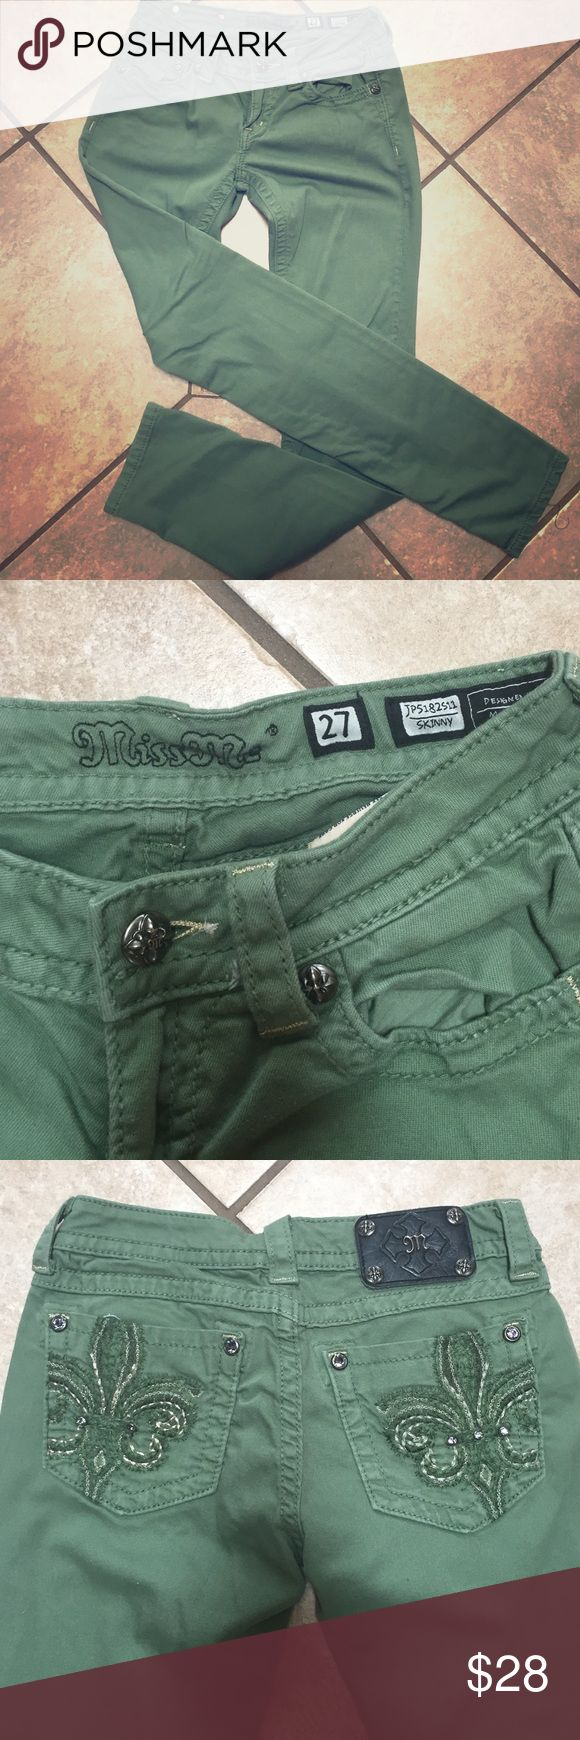 "Embellished Miss Me brand skinny pants Miss me brand skinny jeans in a beautiful green color...perfect for spring. 27"" waist. Only worn a handful of times, so they are in perfect condition! Miss Me Pants Skinny"